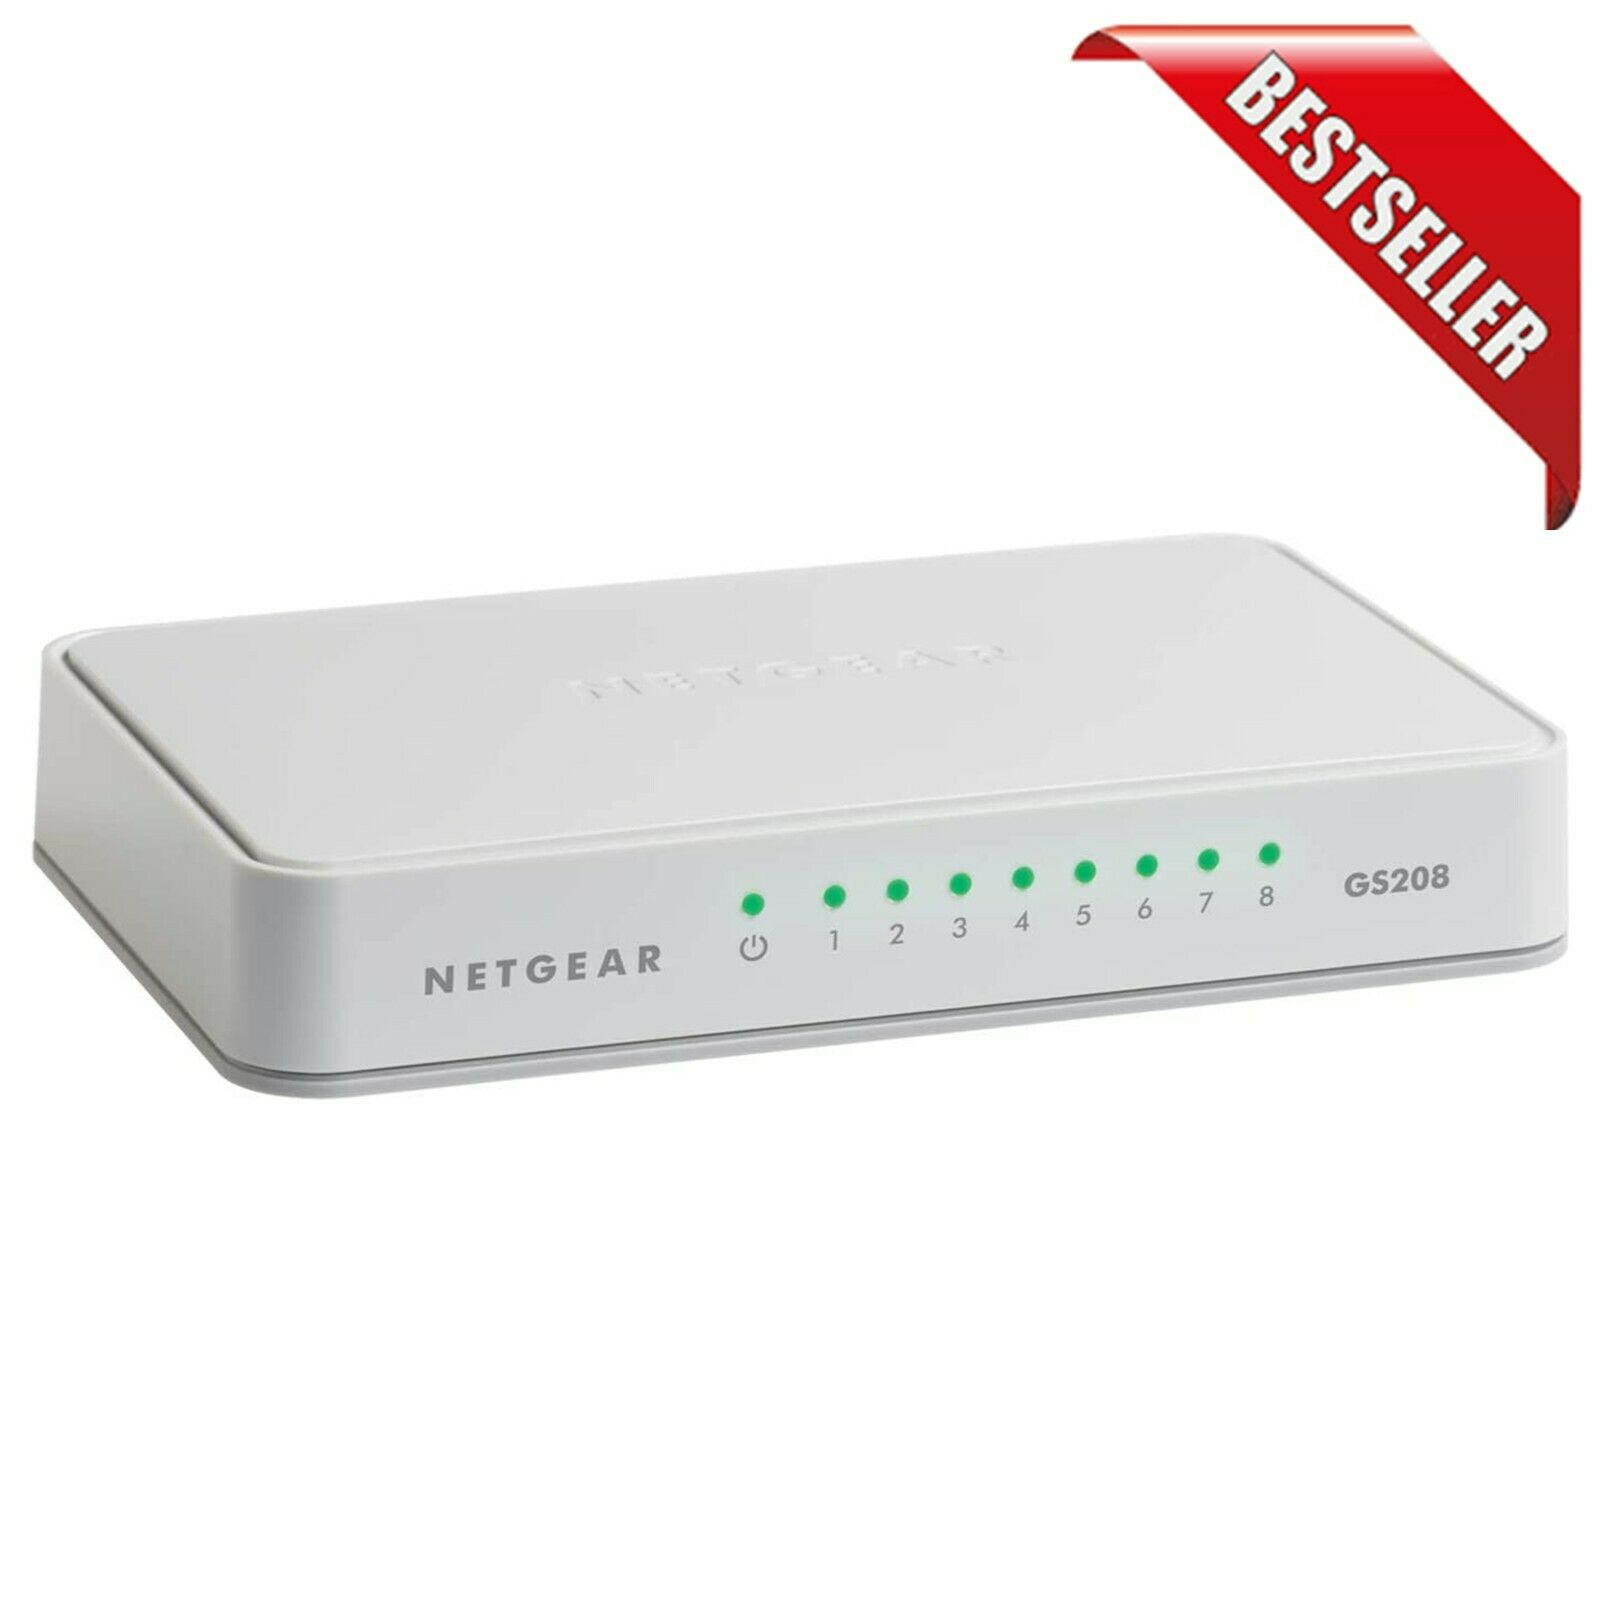 8-Port Gigabit Ethernet Unmanaged Switch, Desktop, Internet